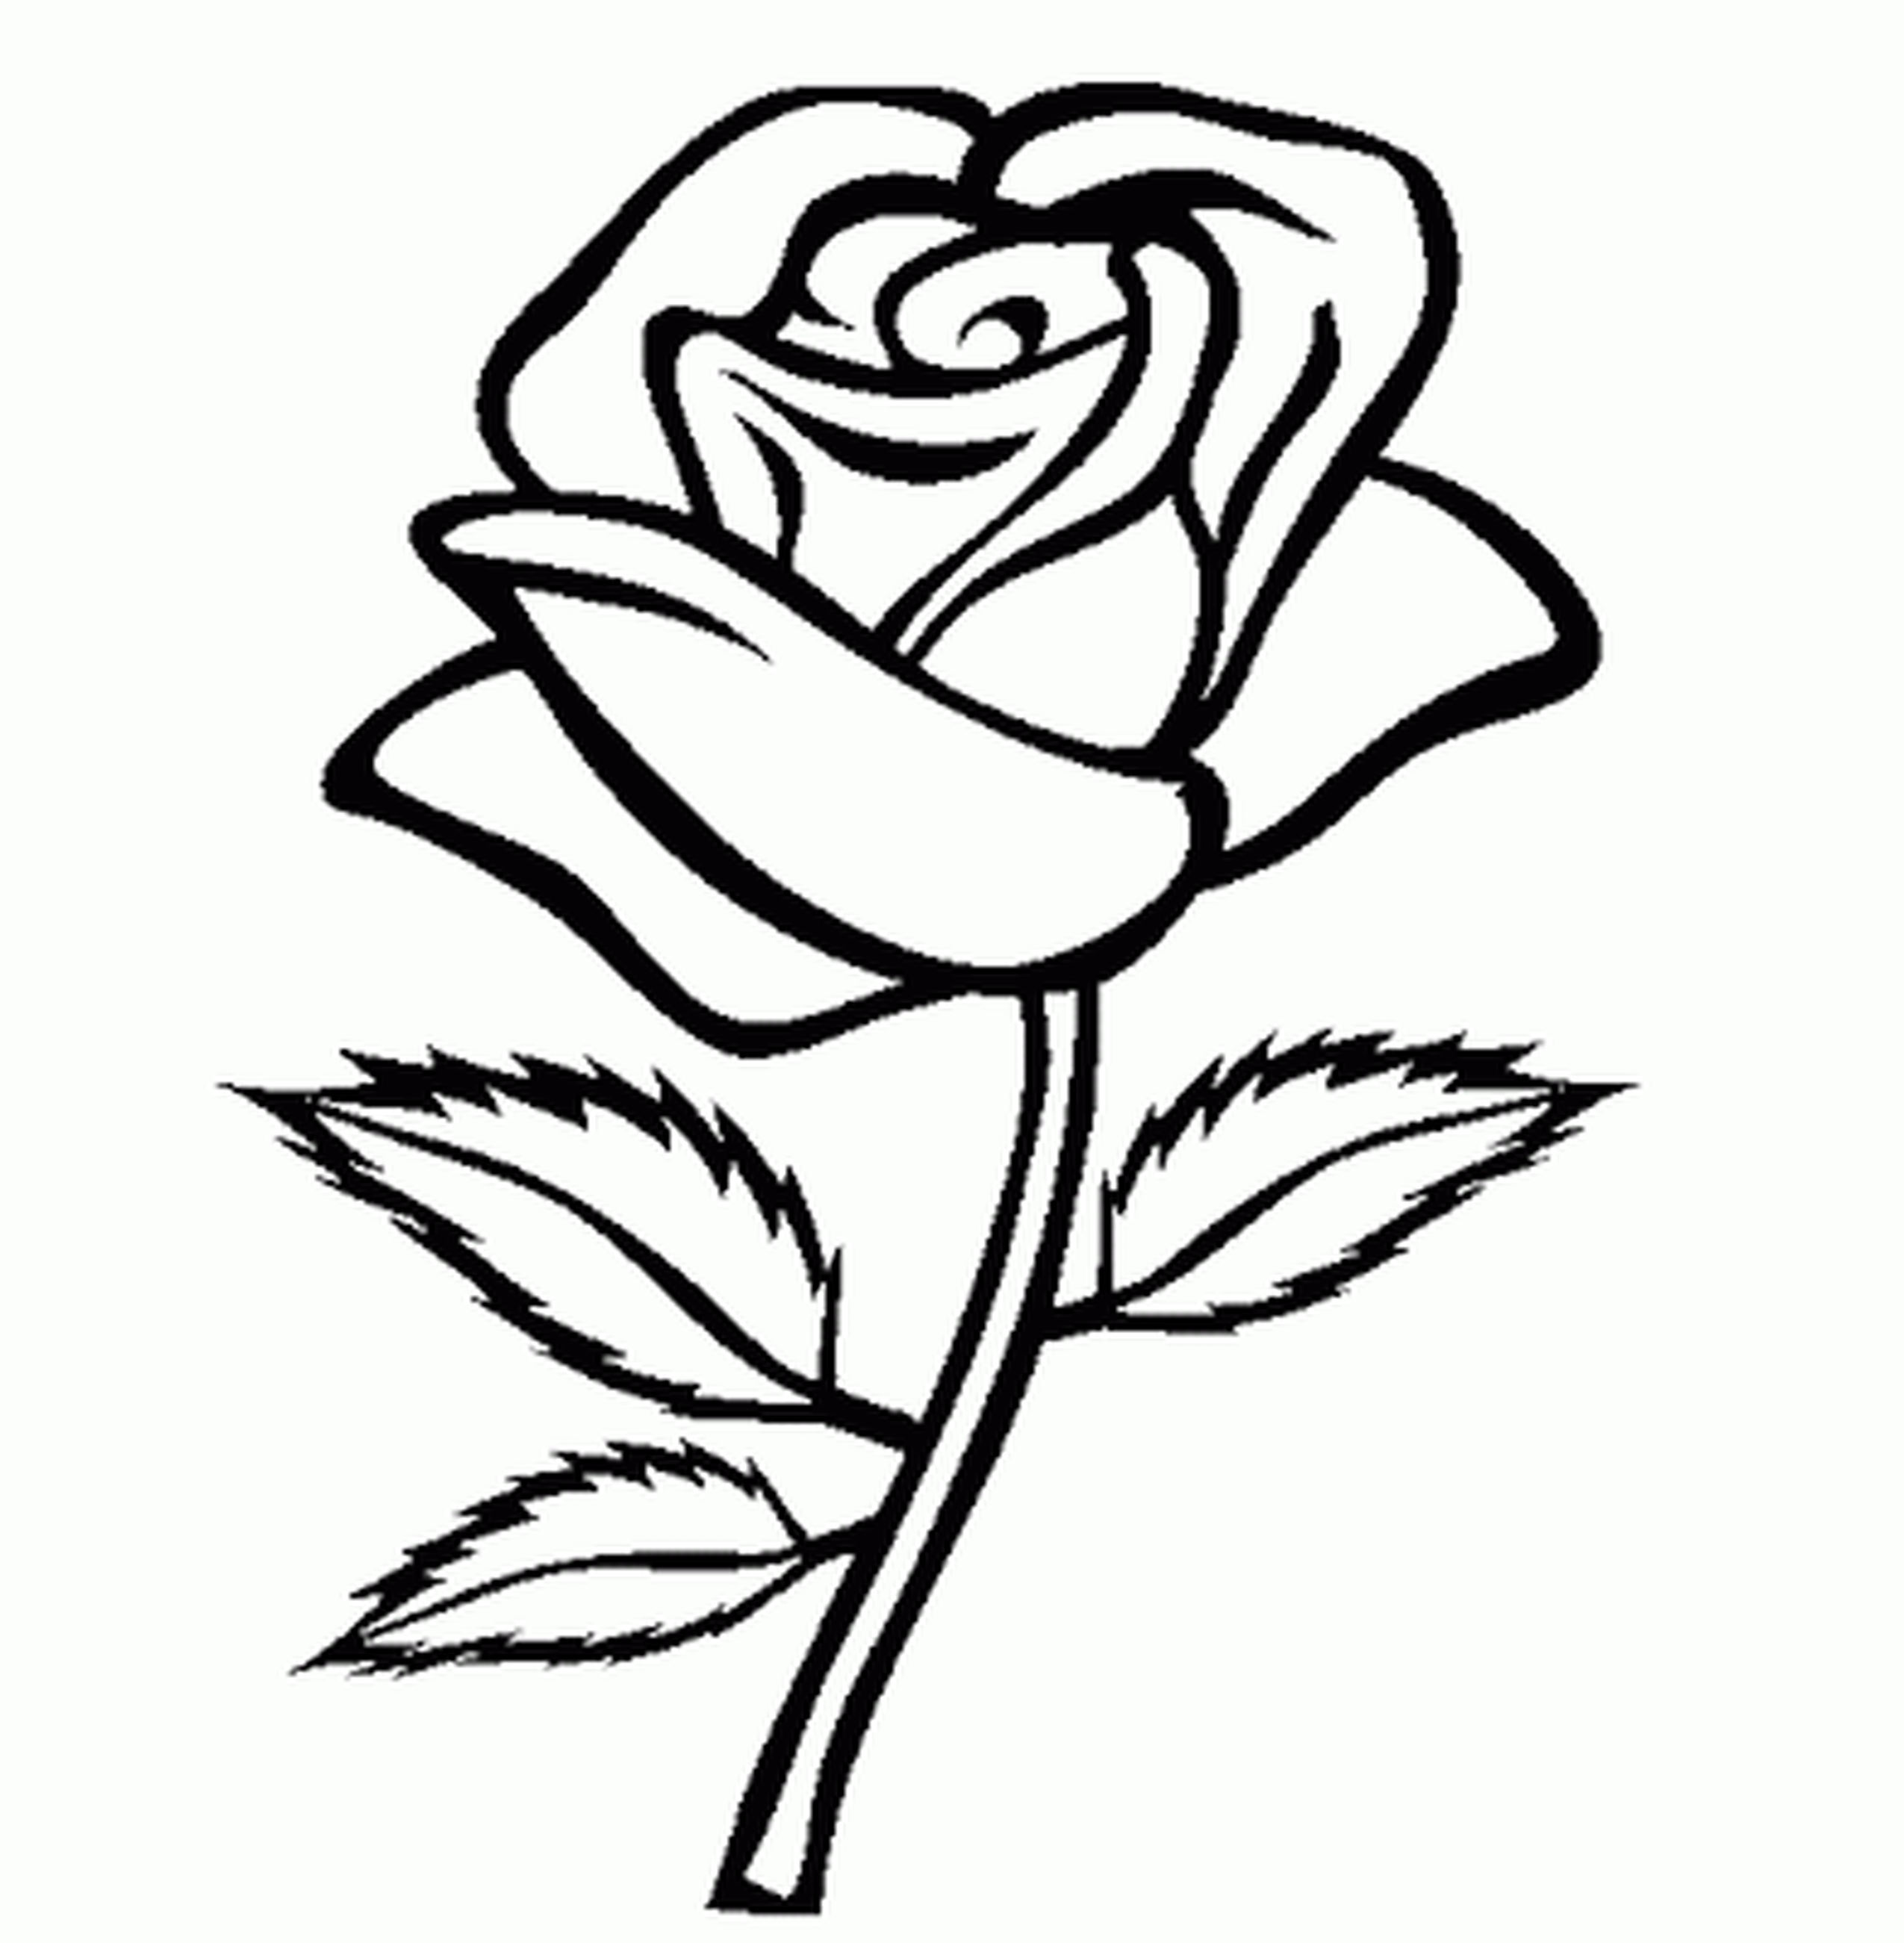 Flowers Outline Drawing at GetDrawings.com | Free for personal use ...